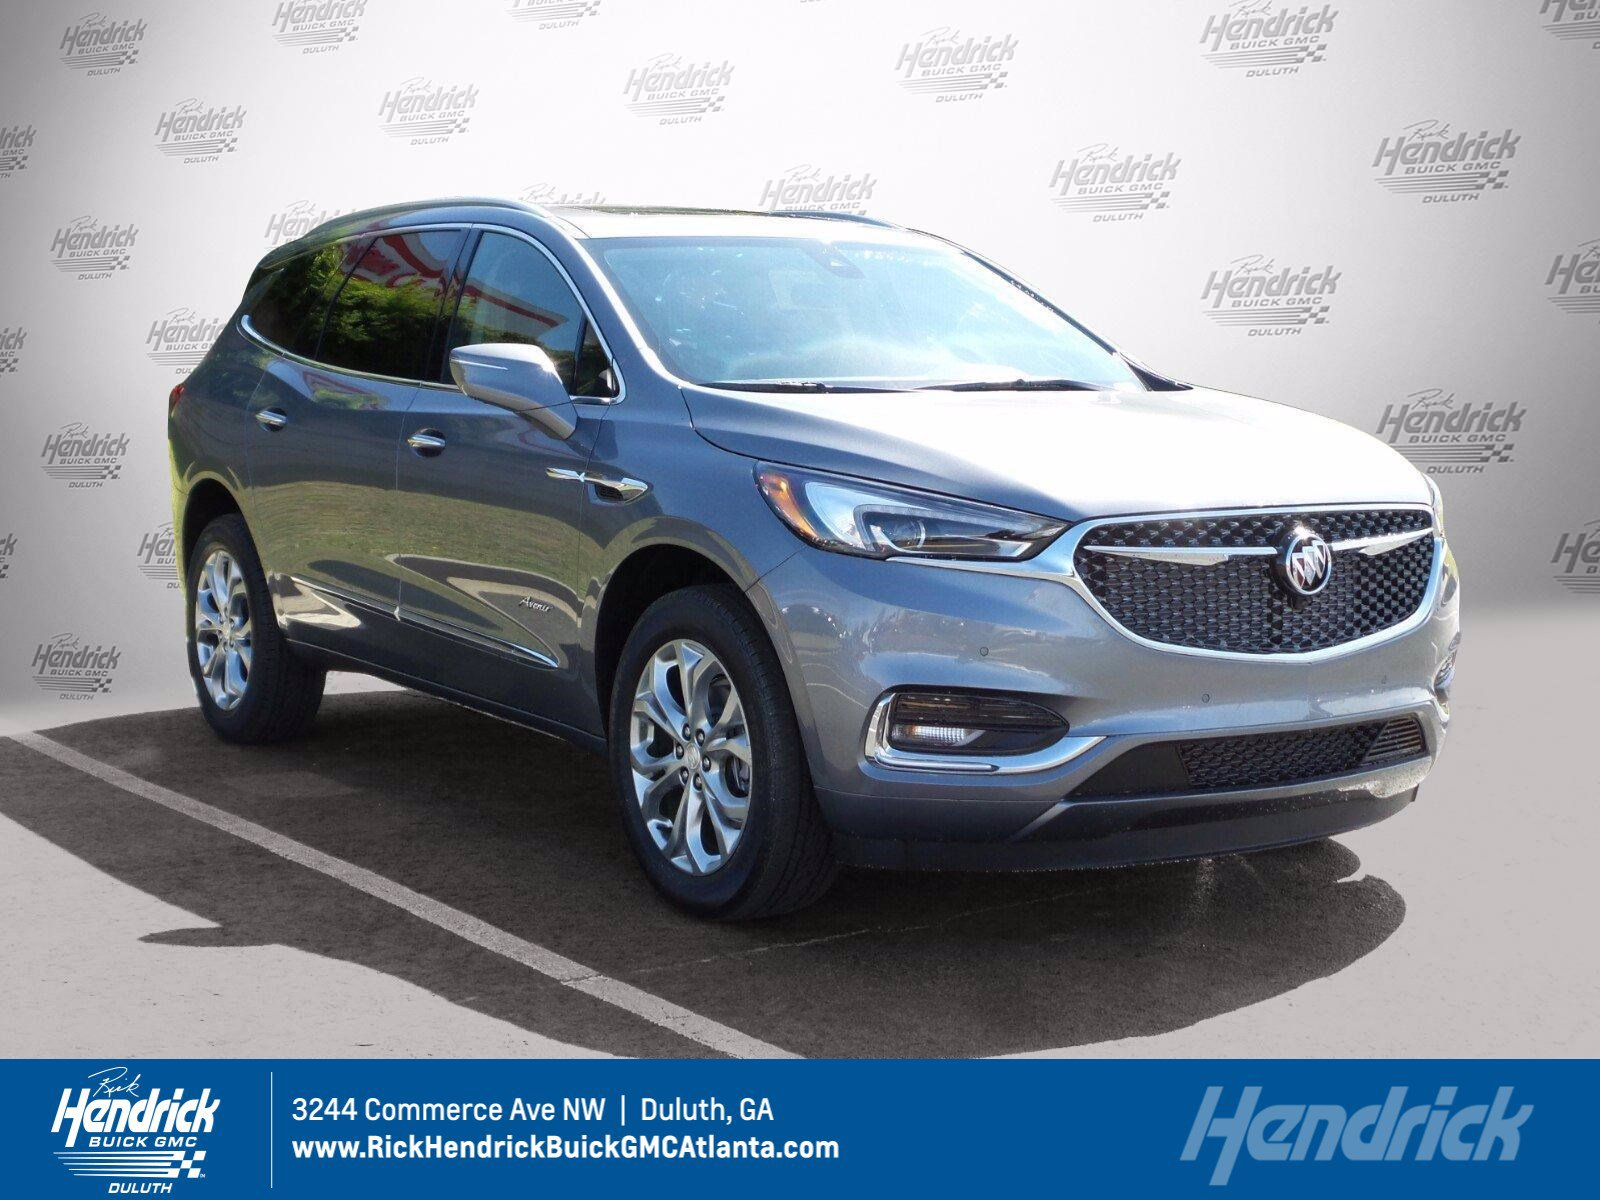 New 2020 Buick Enclave Avenir With Navigation New 2021 Buick Enclave Avenir Test Drive, Lease Deals, Floor Mats